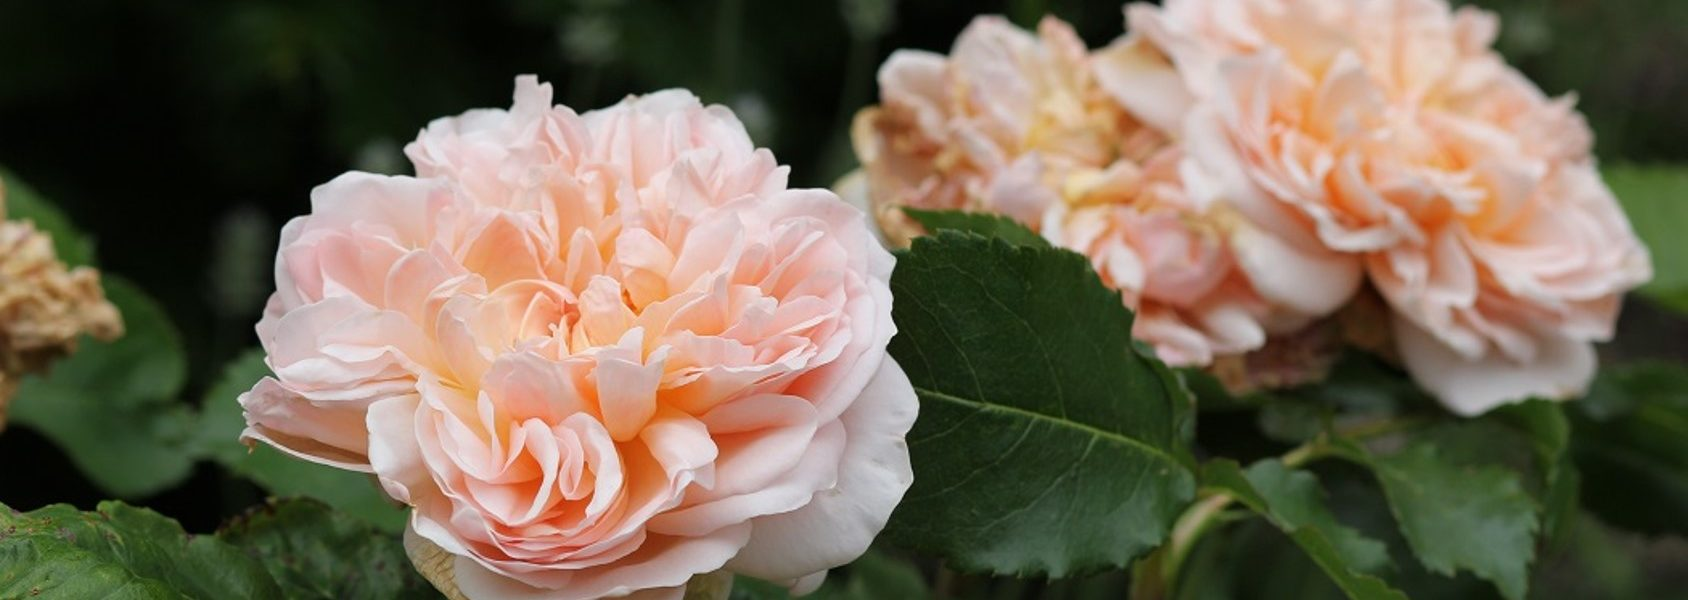 Evelyn rose review the right roses score best top garden store david austin english roses rose products rose rating the right leap rose food fertilizer